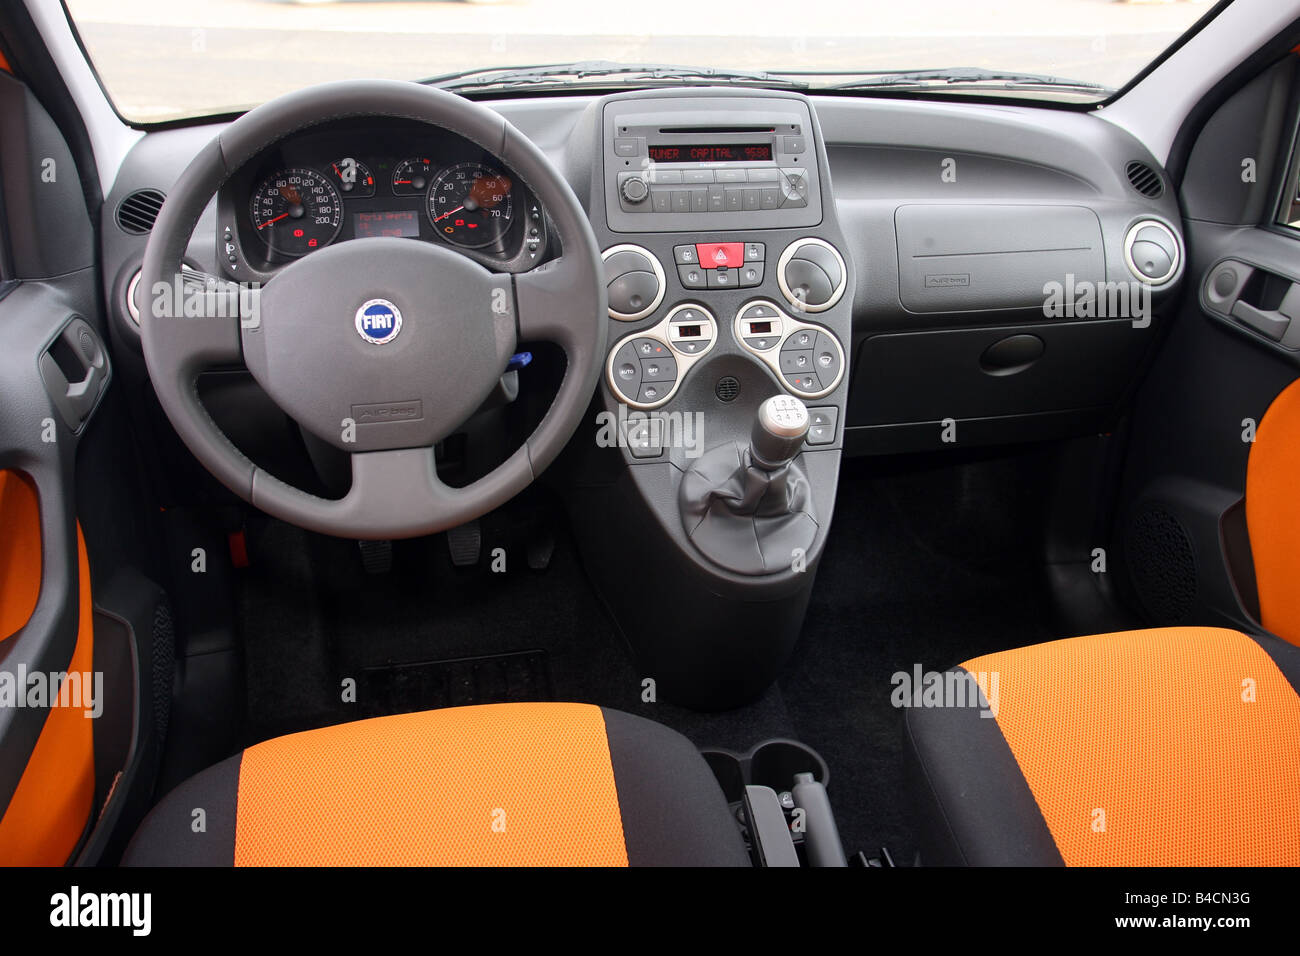 fiat panda 1 3 multijet 16v 4x4 model year 2006 orange interior stock photo 19948980 alamy. Black Bedroom Furniture Sets. Home Design Ideas